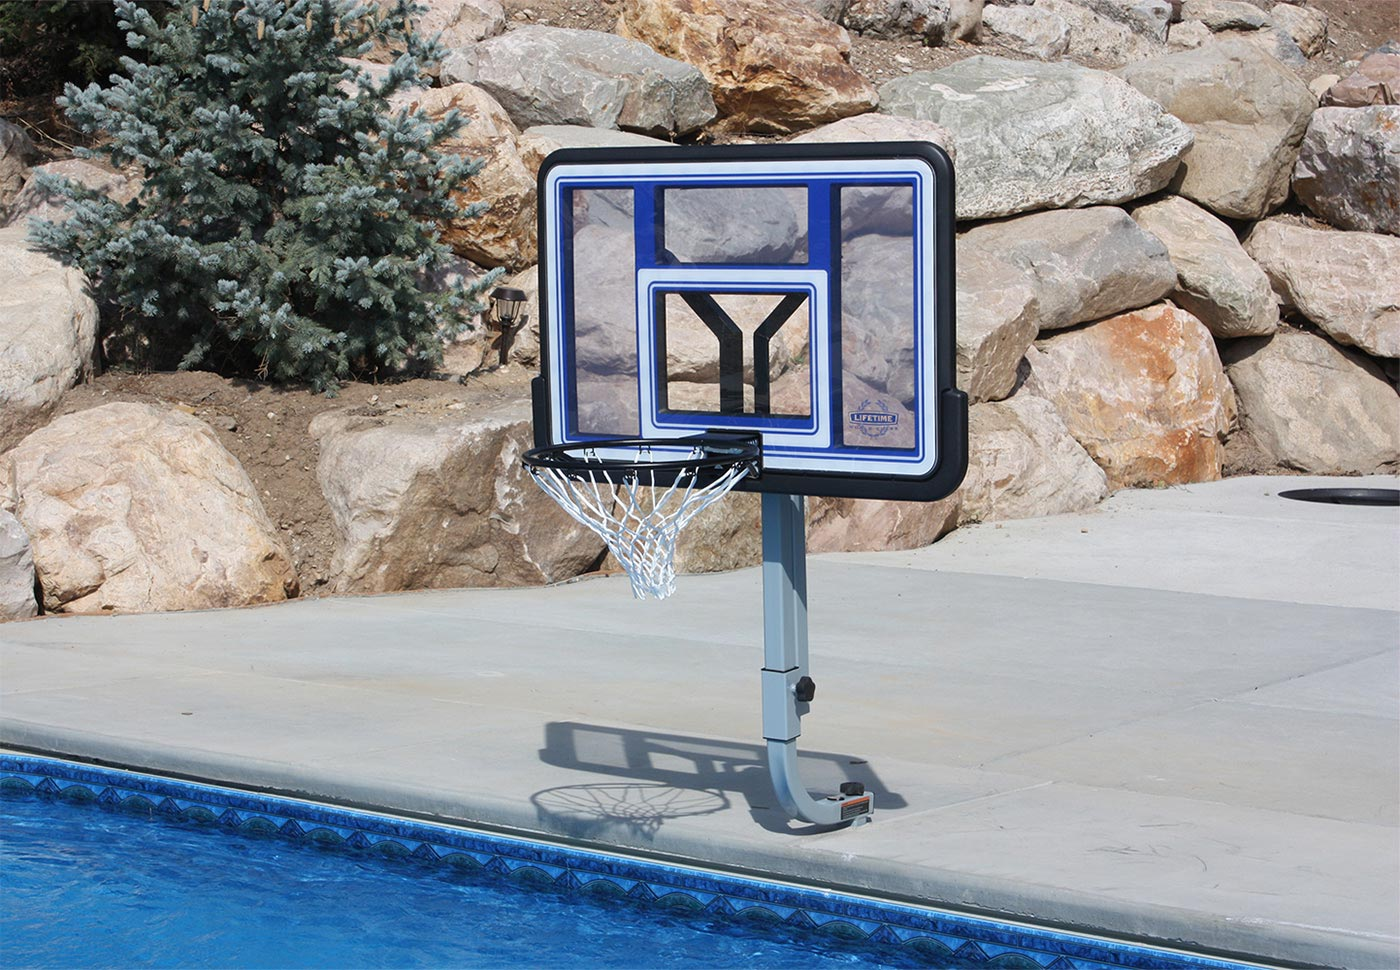 QUIKFIRE BASKETBALL With In-Deck Anchor System BOXES B, C, D, G - SwimShape